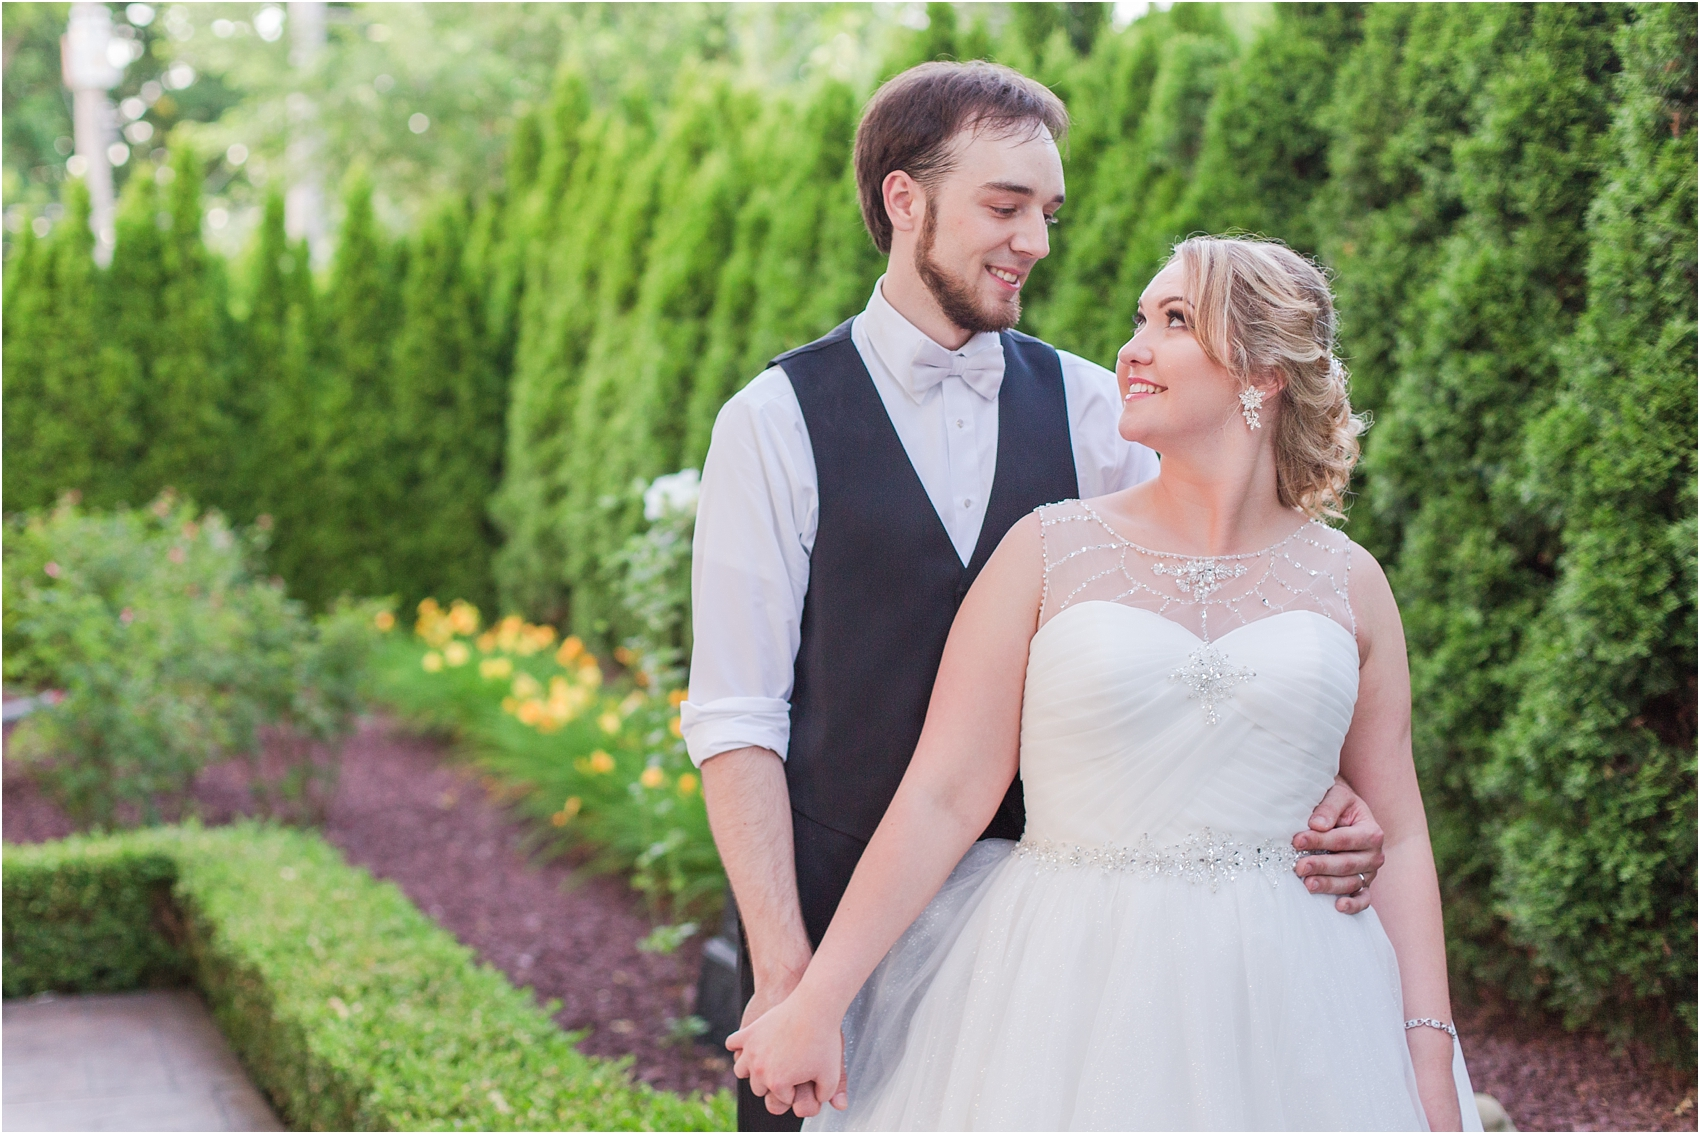 lord-of-the-rings-inspired-wedding-photos-at-crystal-gardens-in-howell-mi-by-courtney-carolyn-photography_0104.jpg